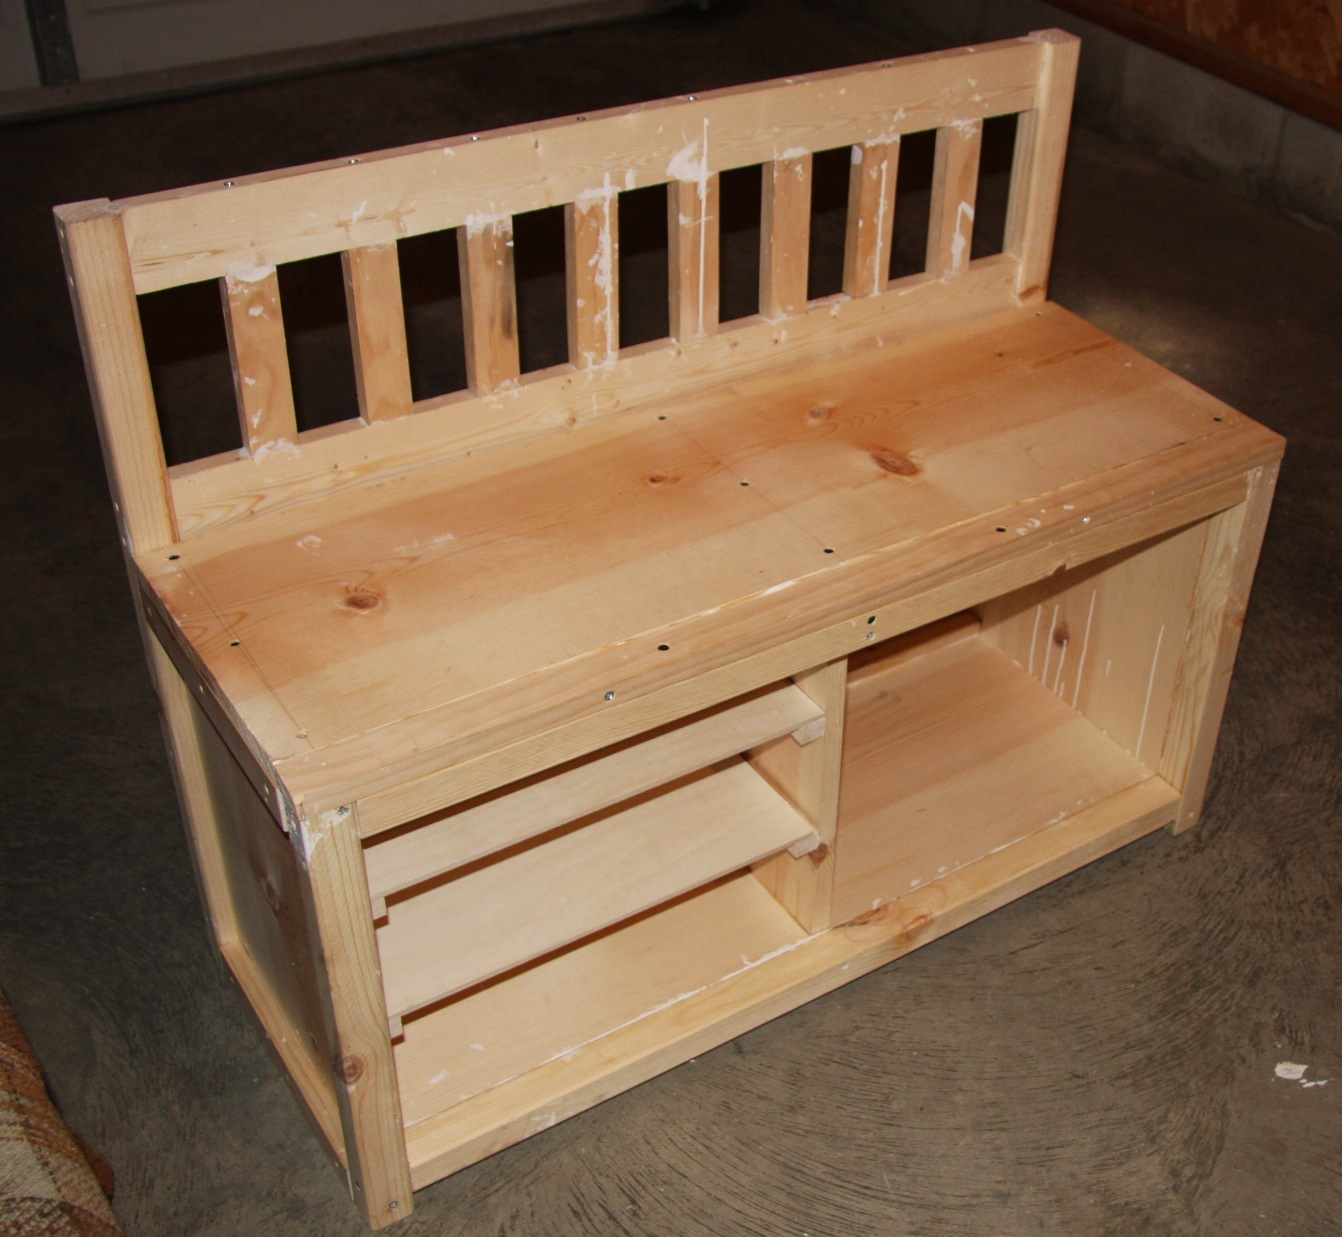 Wood Work Wood Shoe Rack Bench Plans Pdf Plans